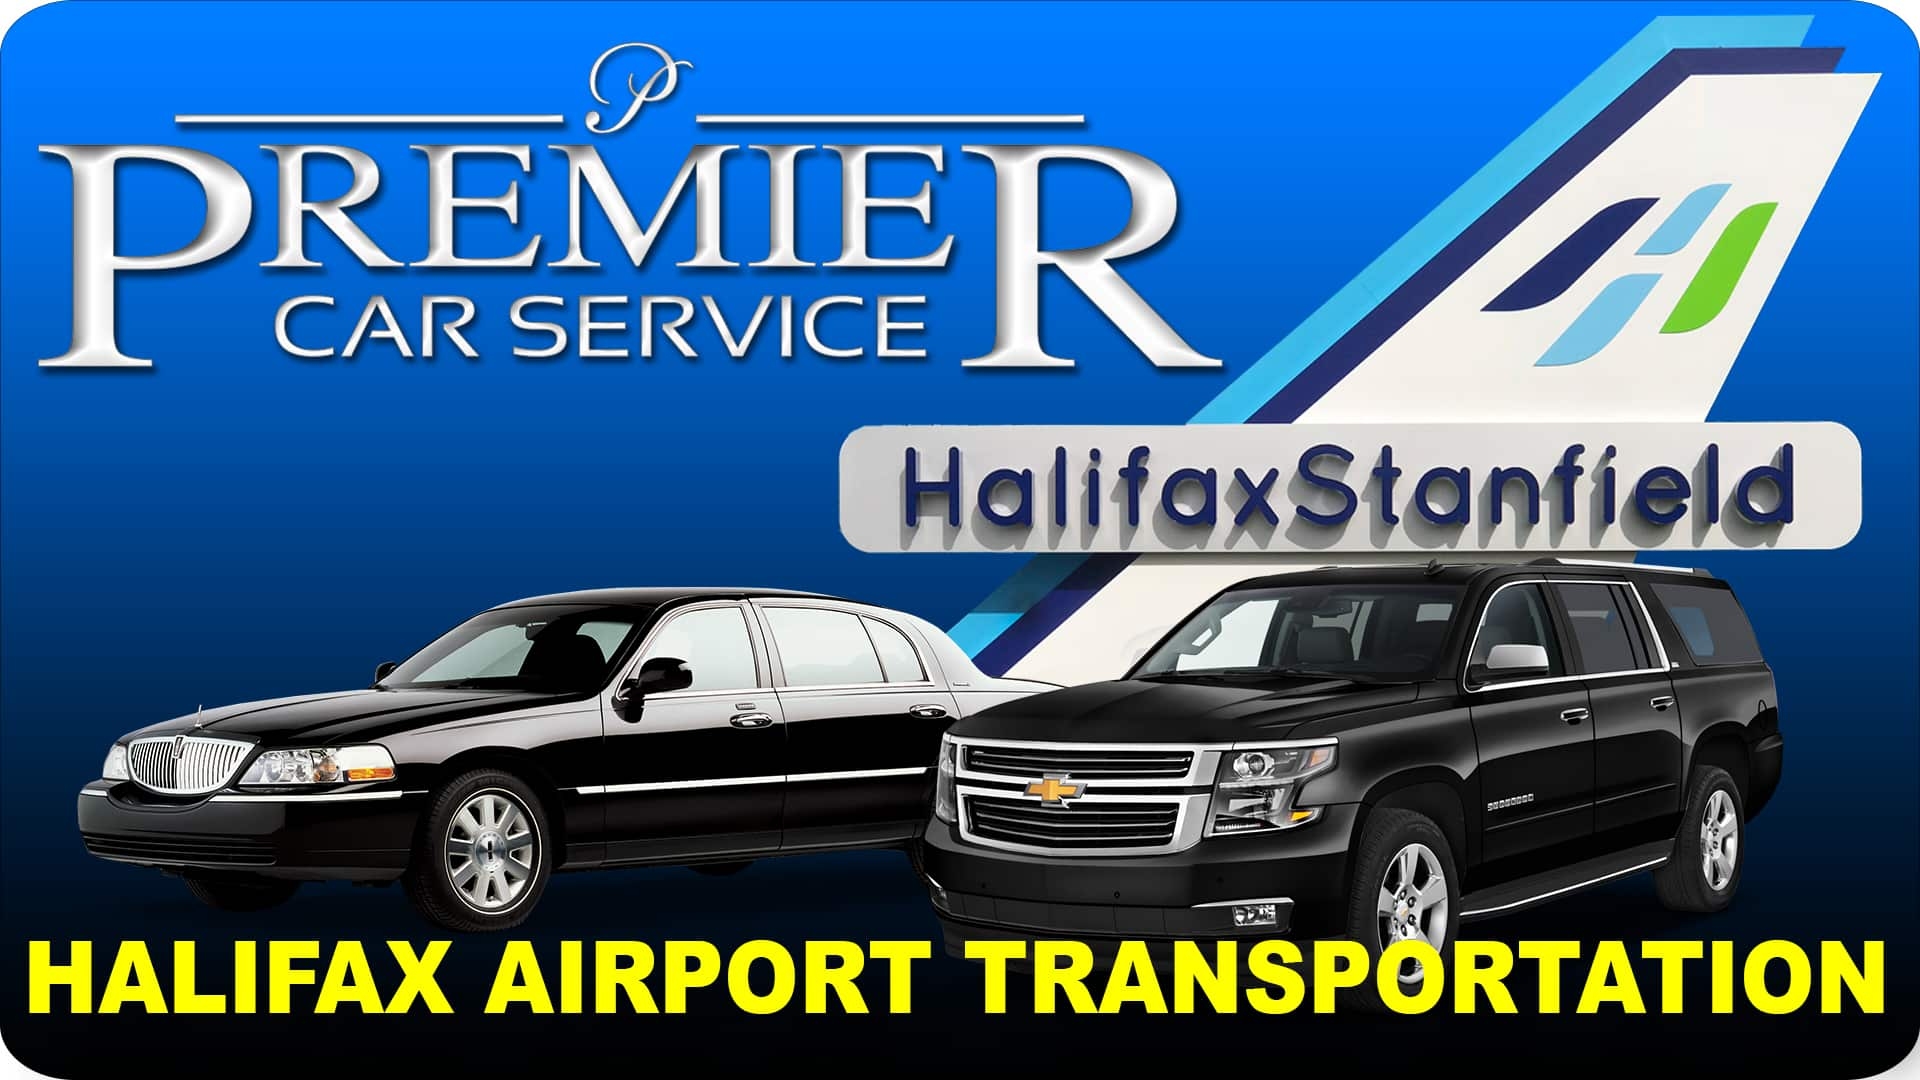 Halifax Airport Taxi Limo Transportation